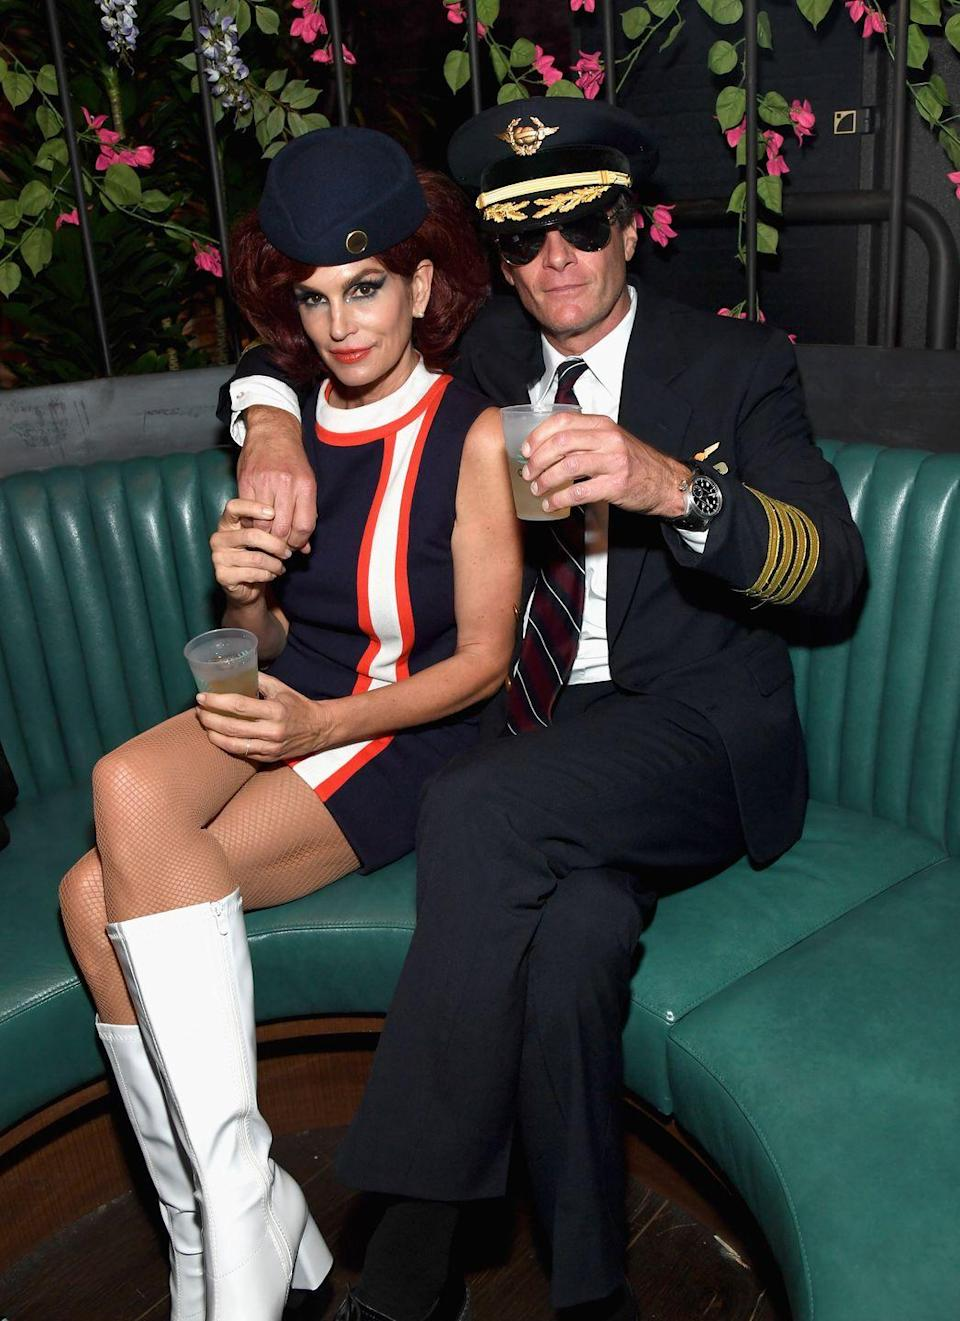 <p>Cozied up at one of <em>two</em> Casamigos Halloween parties in 2018, Cindy Crawford made an old-school flight attendant's uniform look überstylish, while her hubs Rande Gerber (a Casamigos cofounder) rocked a pilot outfit. (P.S. George Clooney joined in as a pilot, too.)</p>